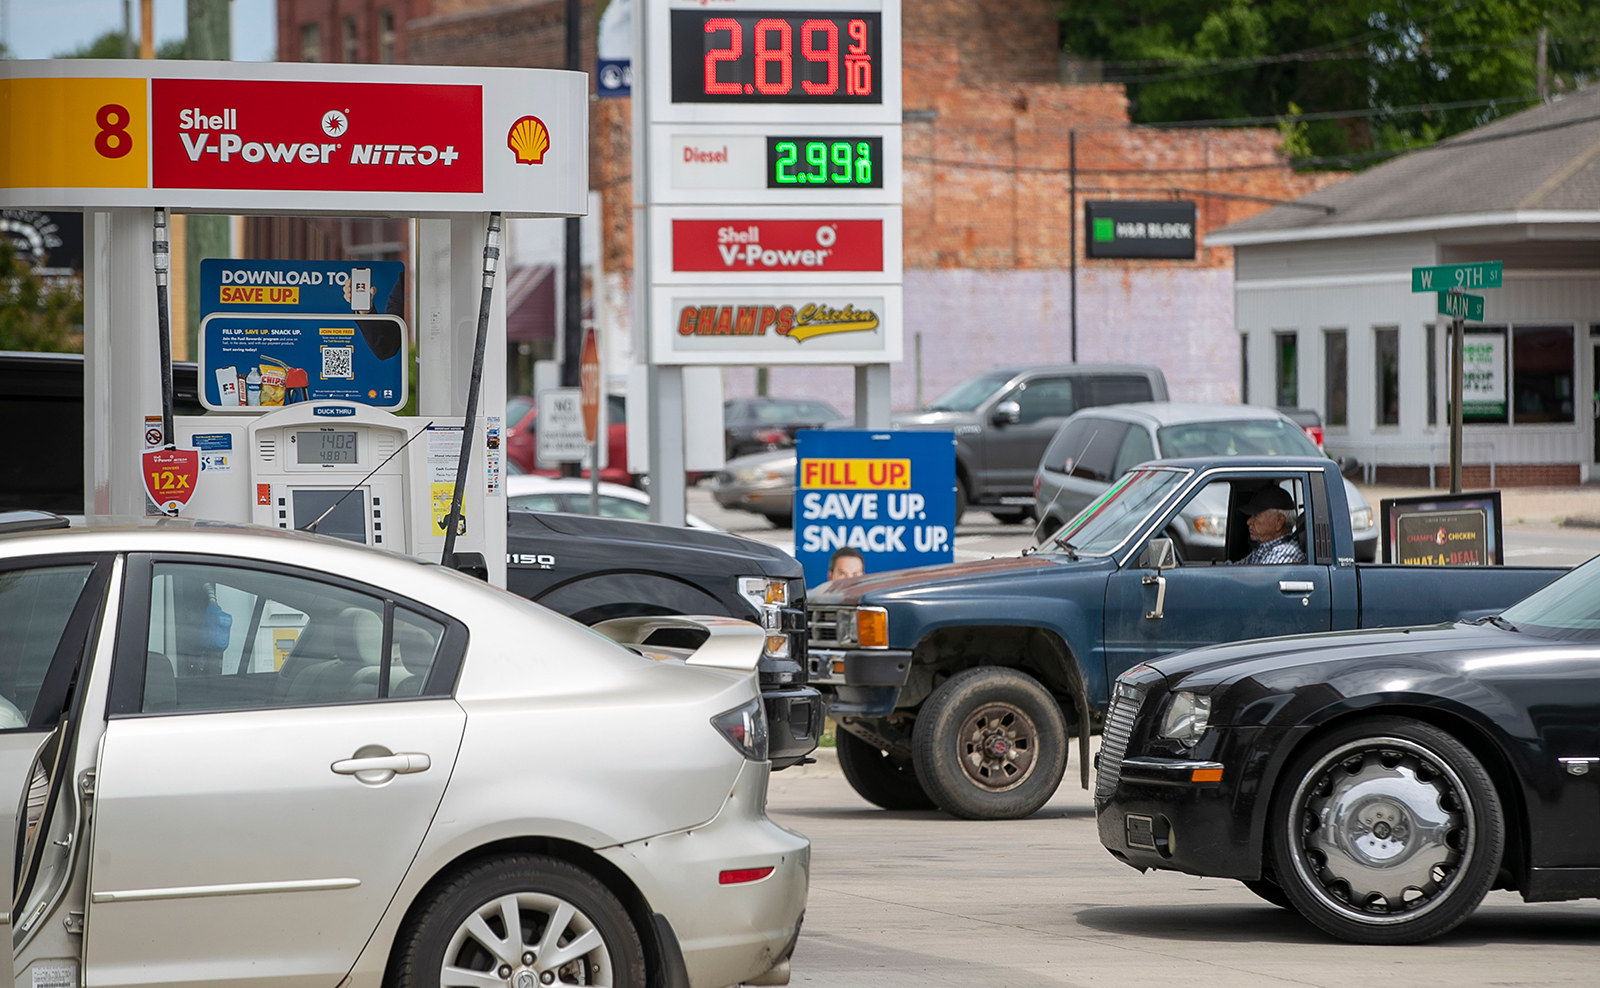 Customers wait in line to purchase fuel at the Duck-Thru in Scotland Neck, North Carolina, on Tuesday, May 11.